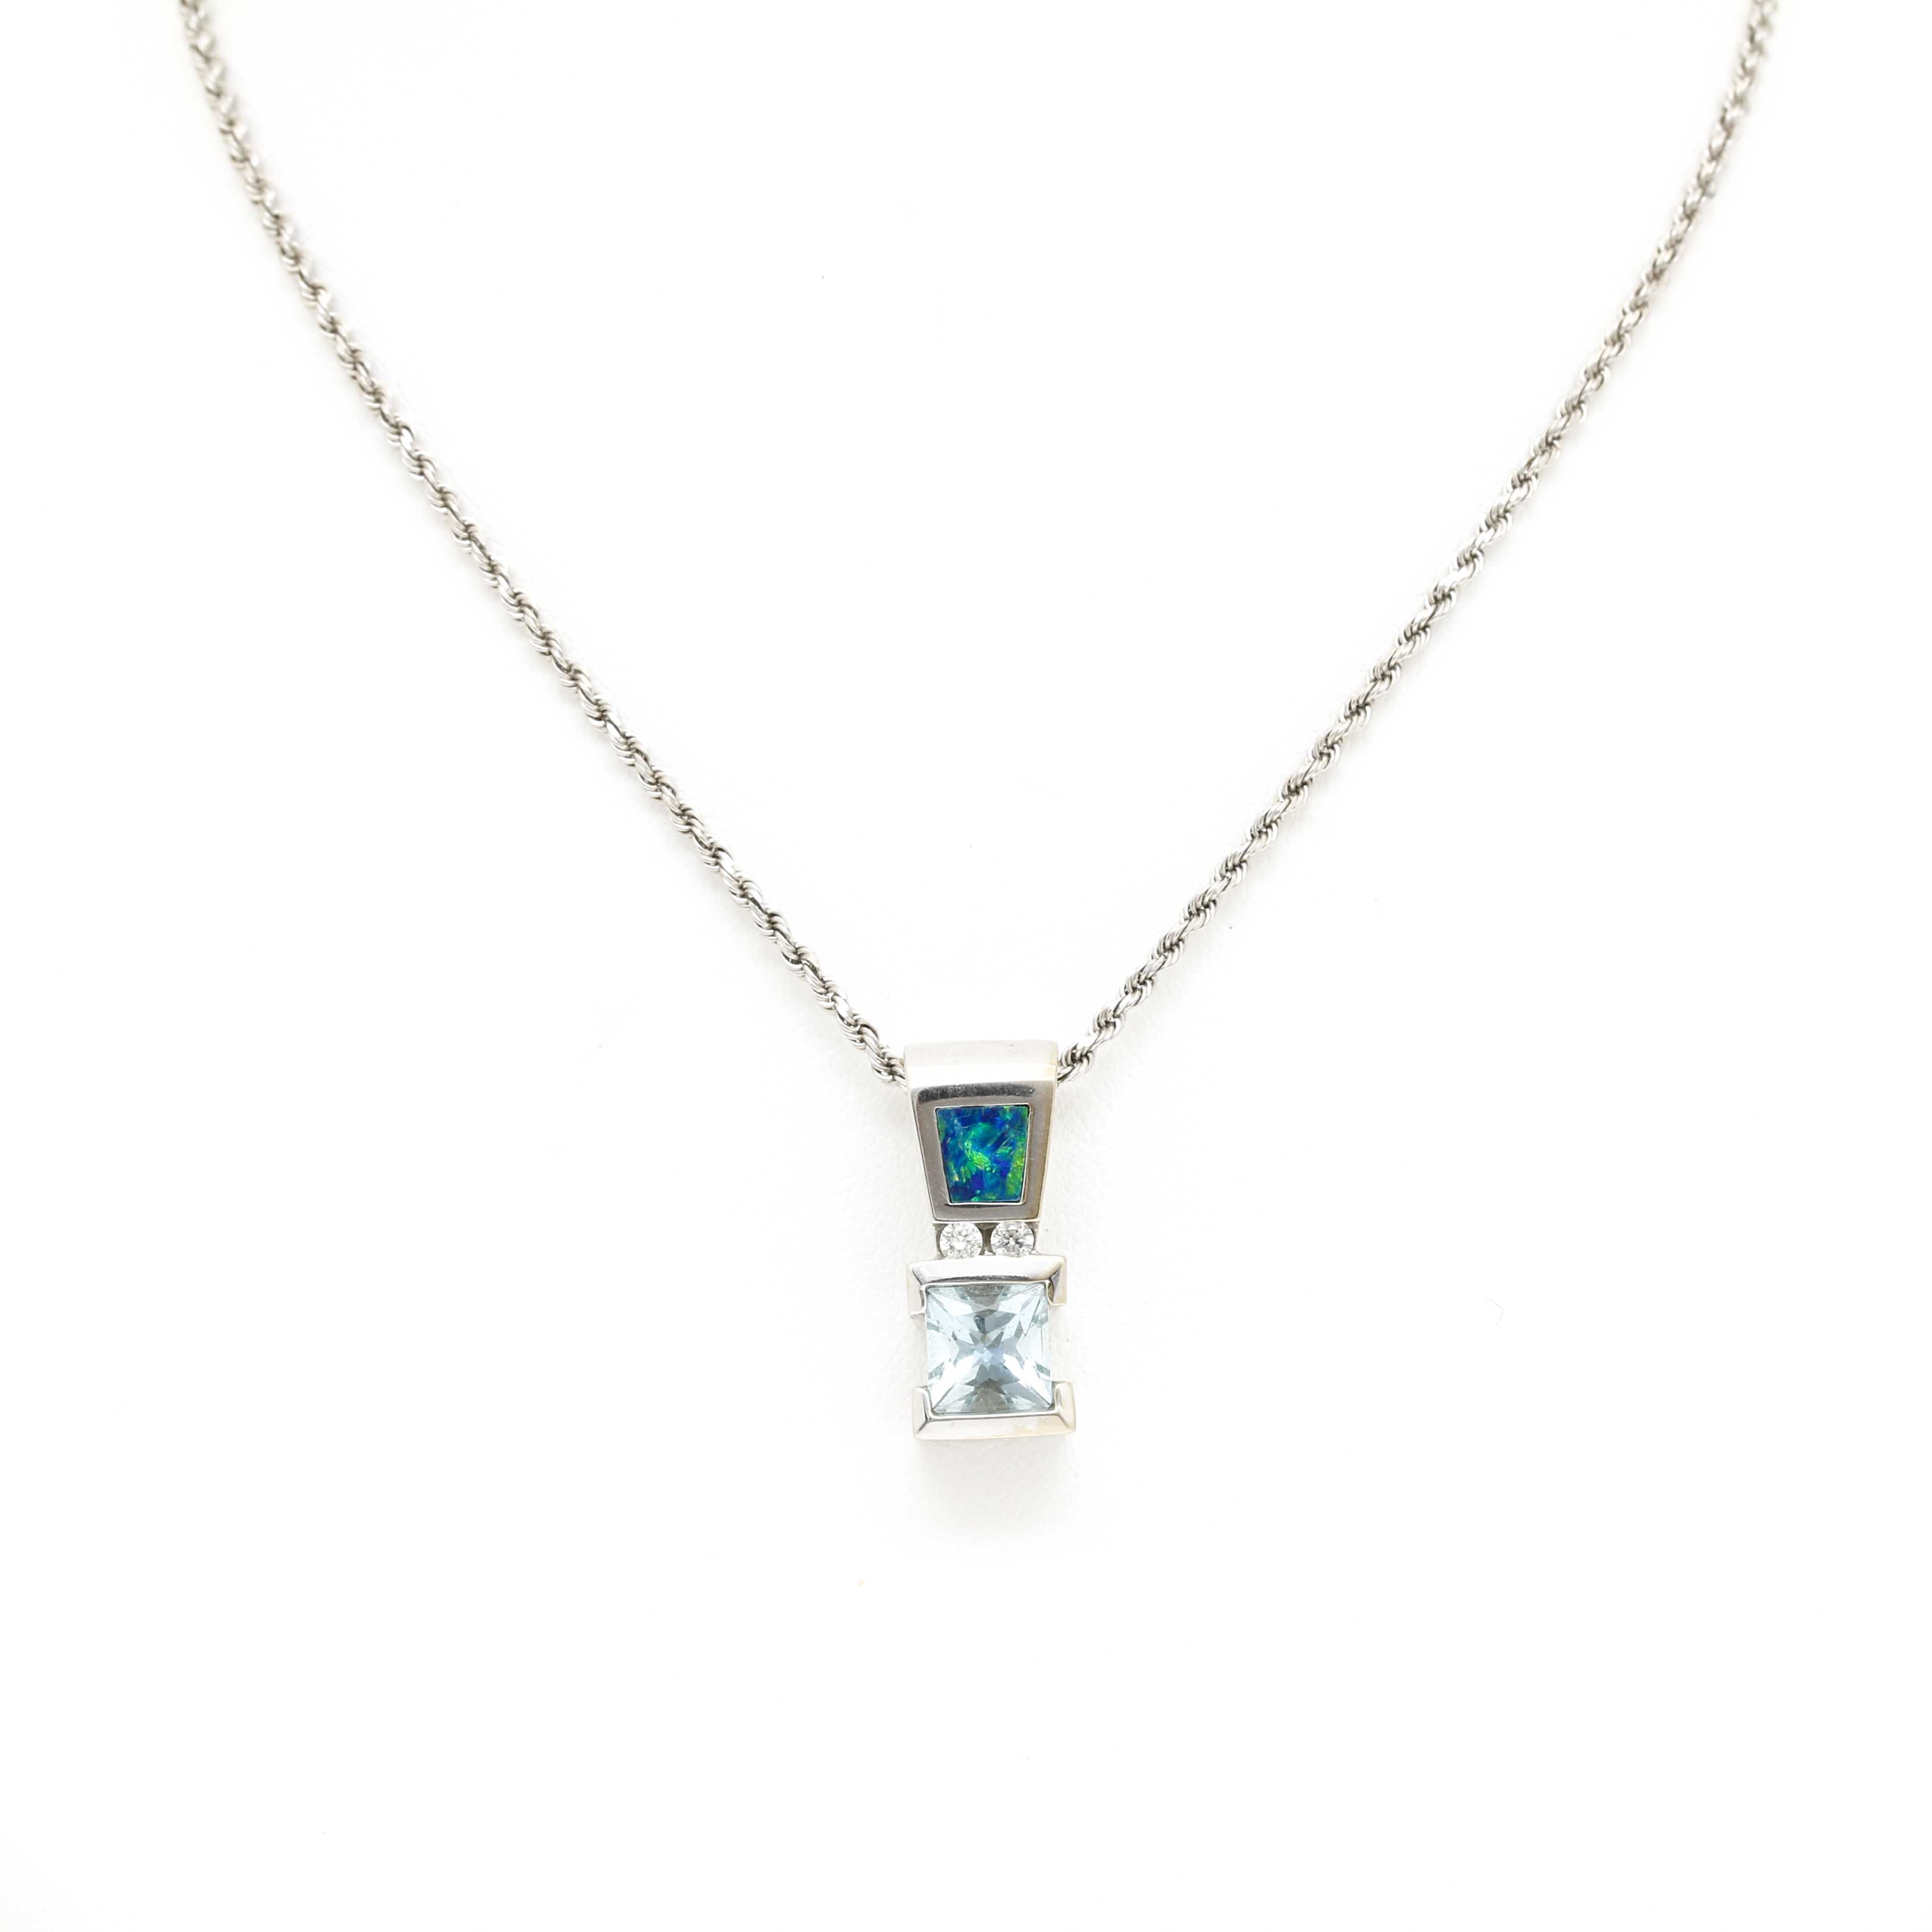 14K White Gold Aquamarine and Opal Inlay Pendant Necklace